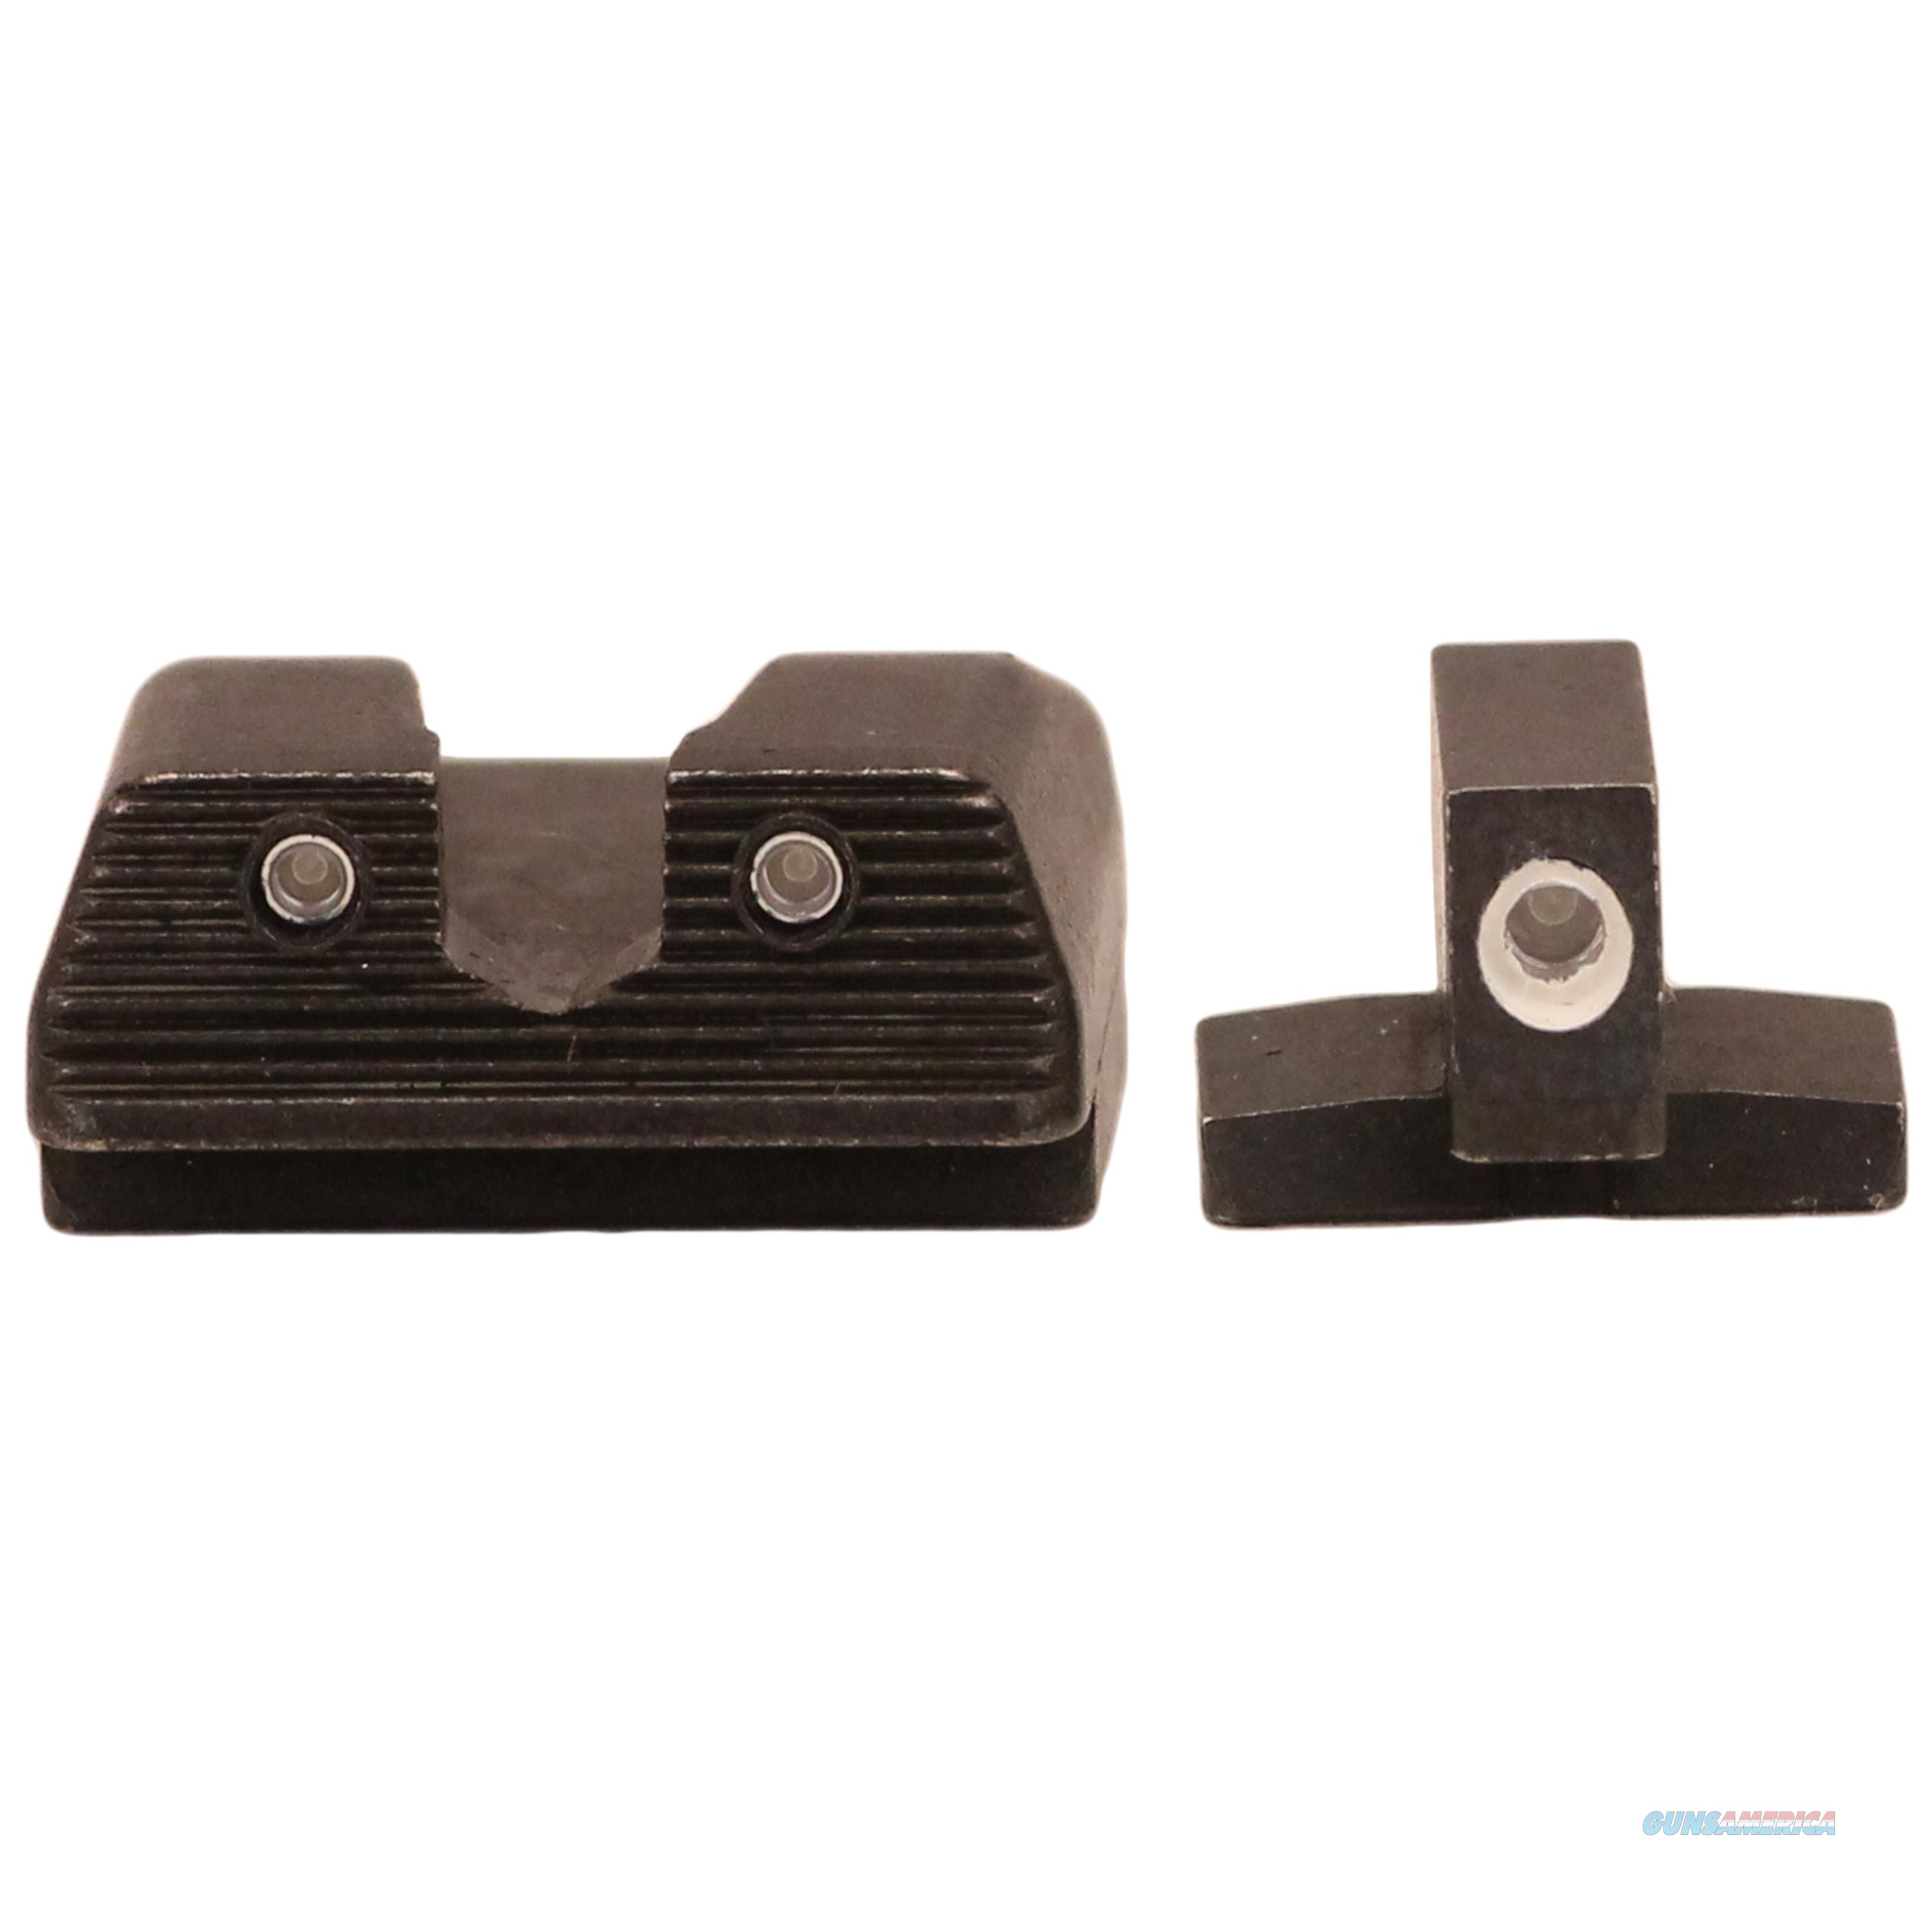 Fn Manufacturing Fnx/Fns-40 Night Sight Set 67170-2  Non-Guns > Scopes/Mounts/Rings & Optics > Mounts > Other